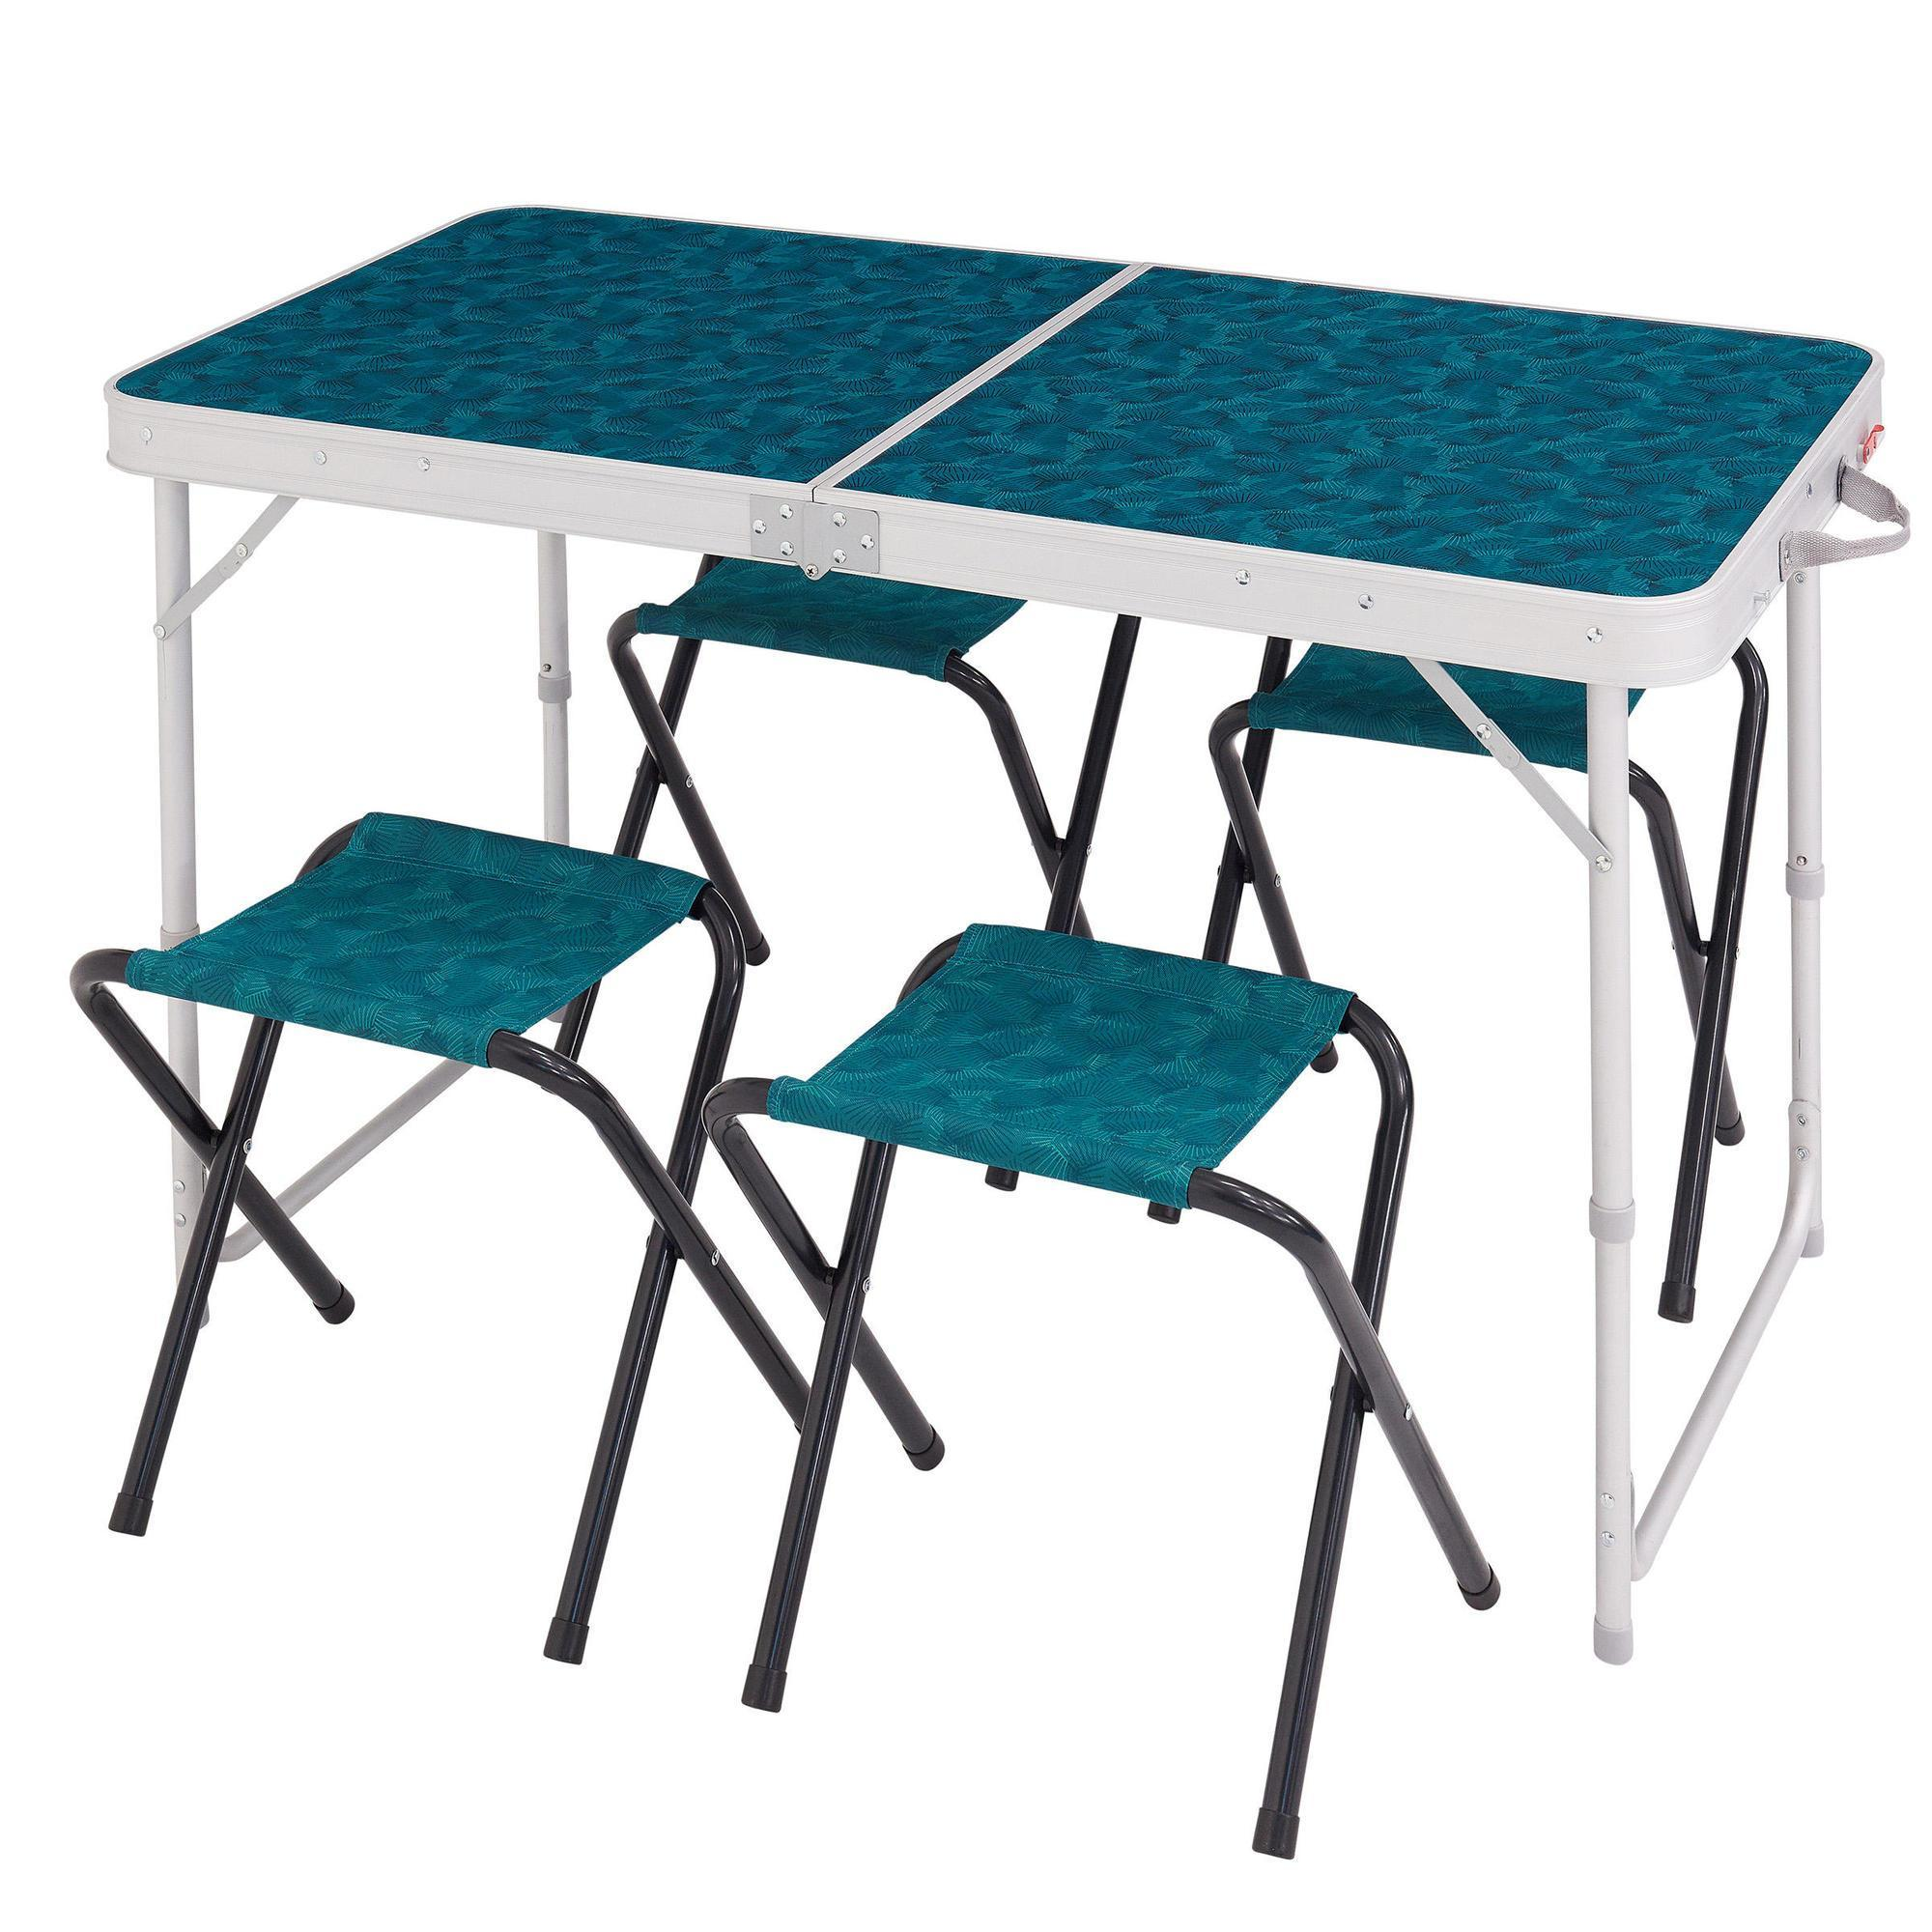 Table Valise + 4 Tabourets Table De Camping Pliante Avec 4 Tabourets